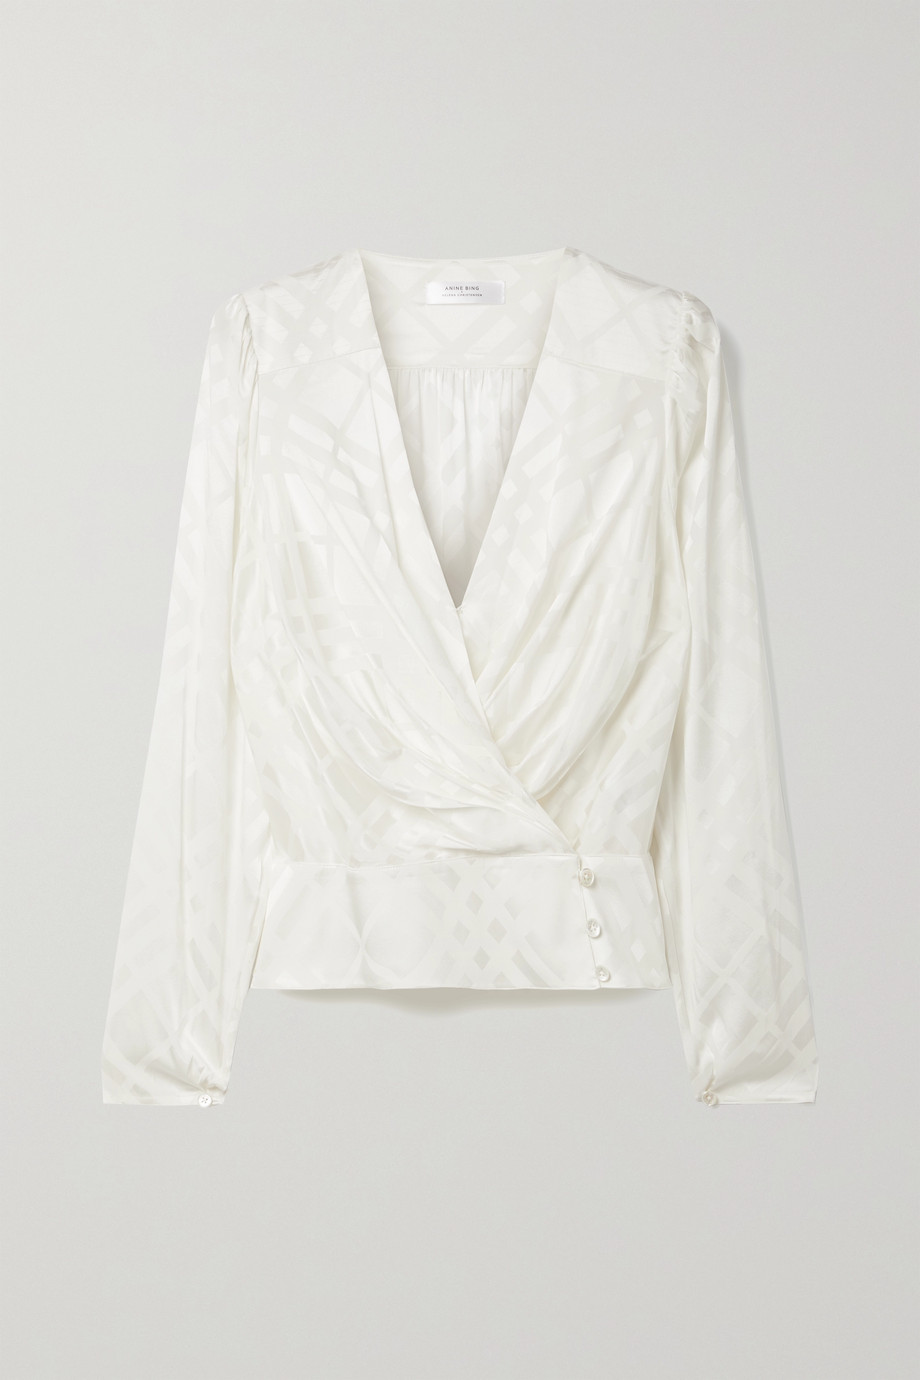 ANINE BING + Helena Christensen June silk-blend satin-jacquard wrap top